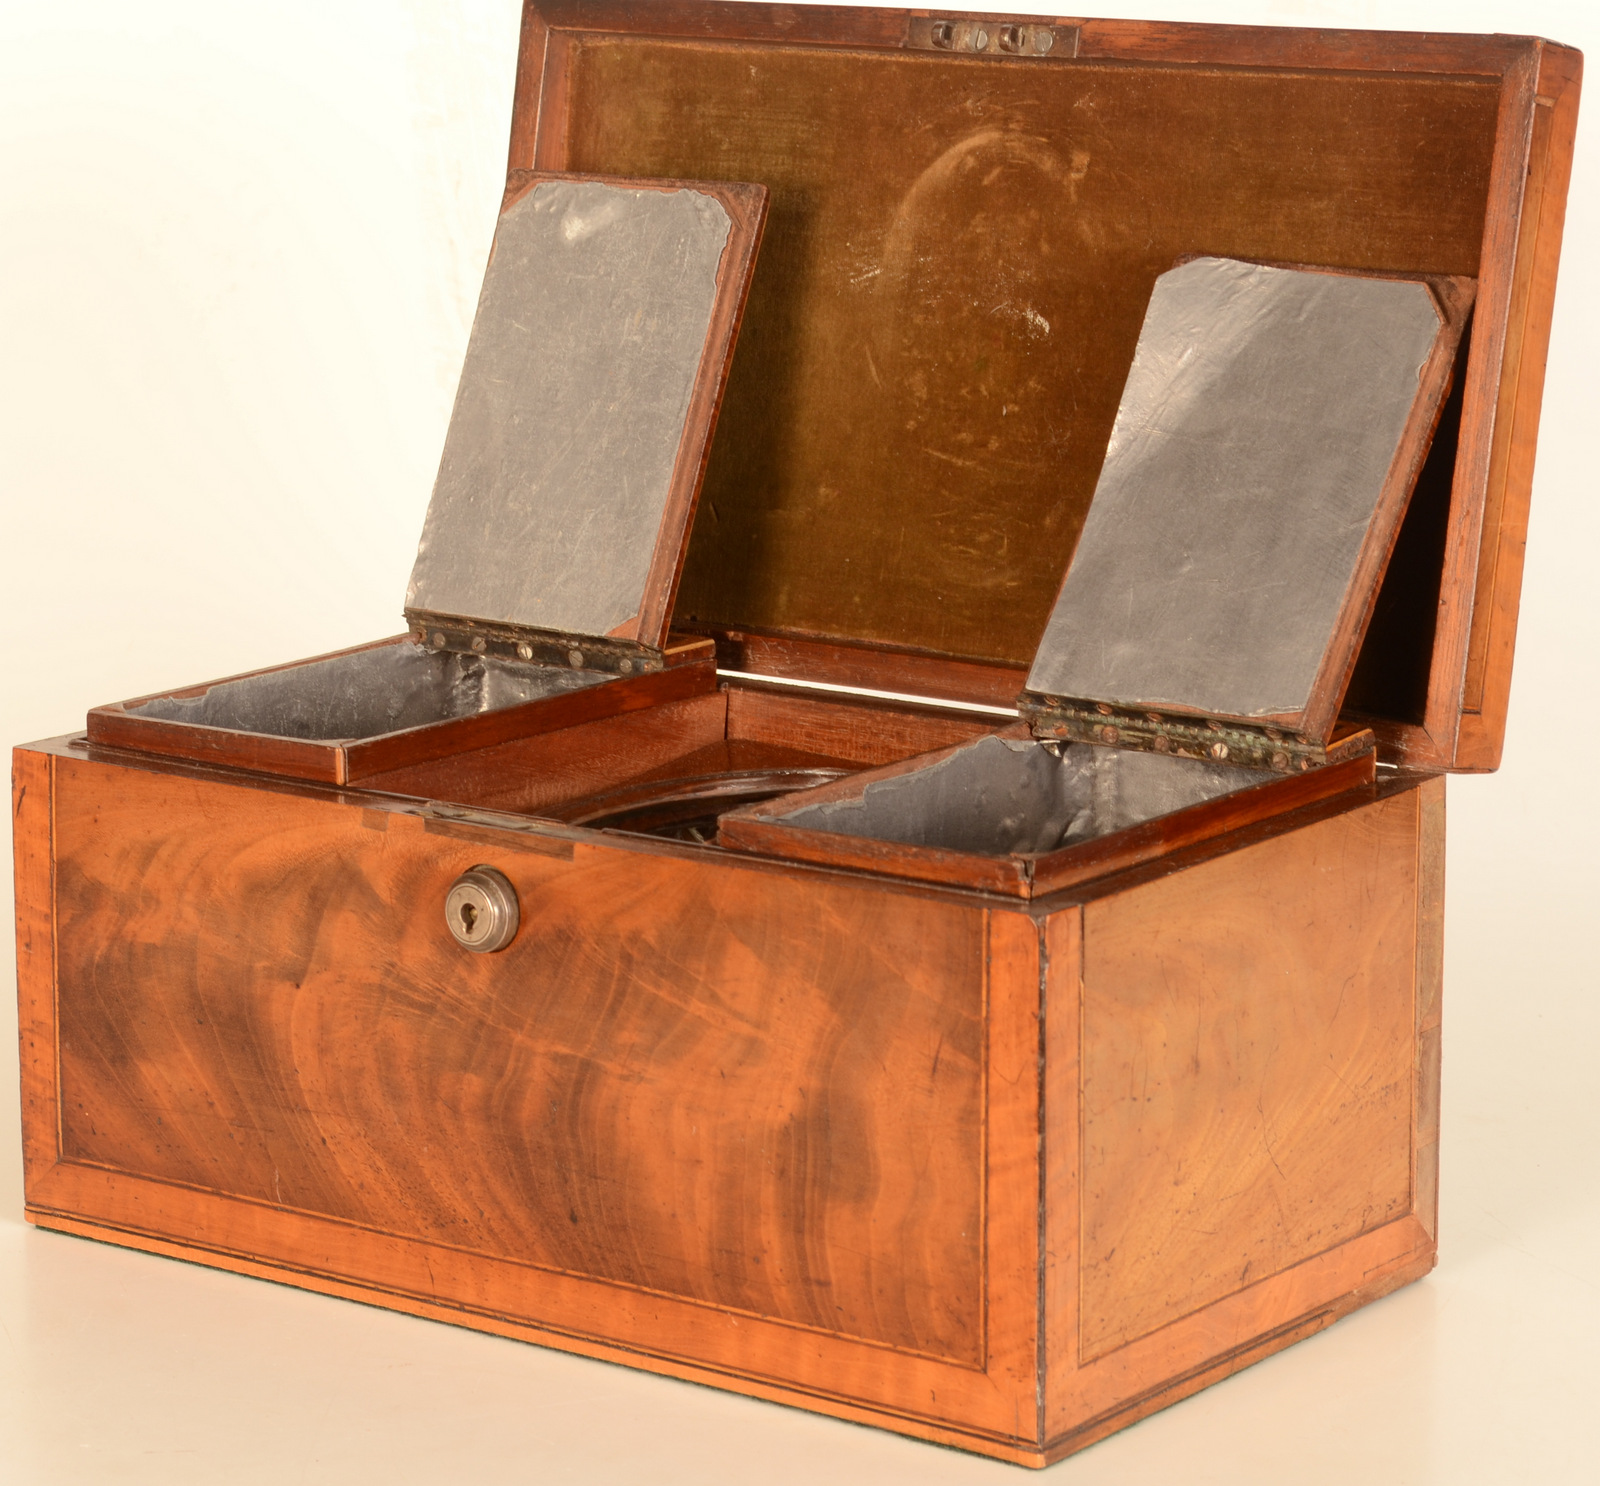 Lot 60 - A Regency crossbanded mahogany three compartment tea chest with silver handle and oval cut glass